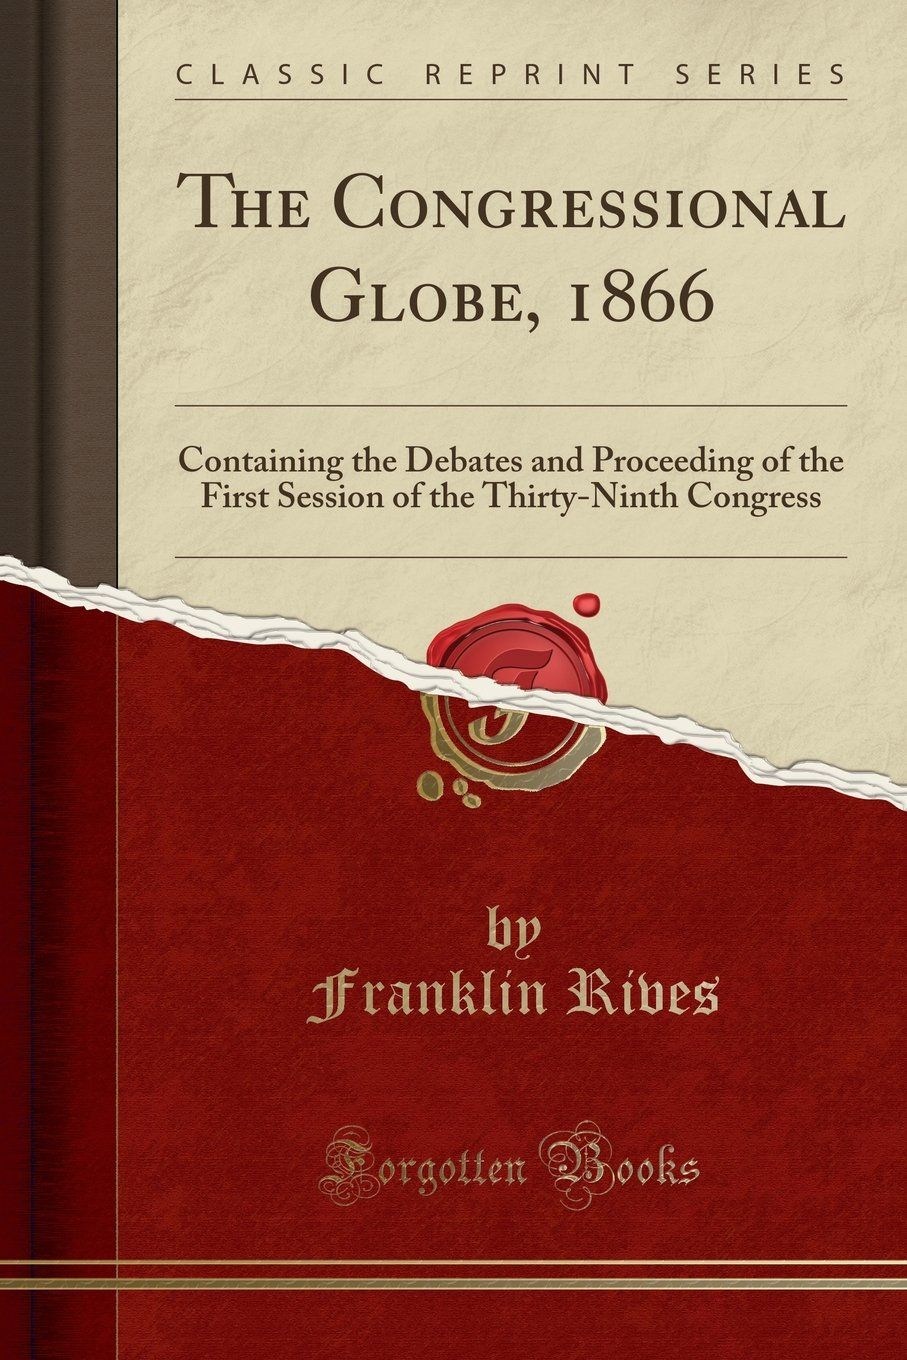 Read Online The Congressional Globe, 1866: Containing the Debates and Proceeding of the First Session of the Thirty-Ninth Congress (Classic Reprint) pdf epub